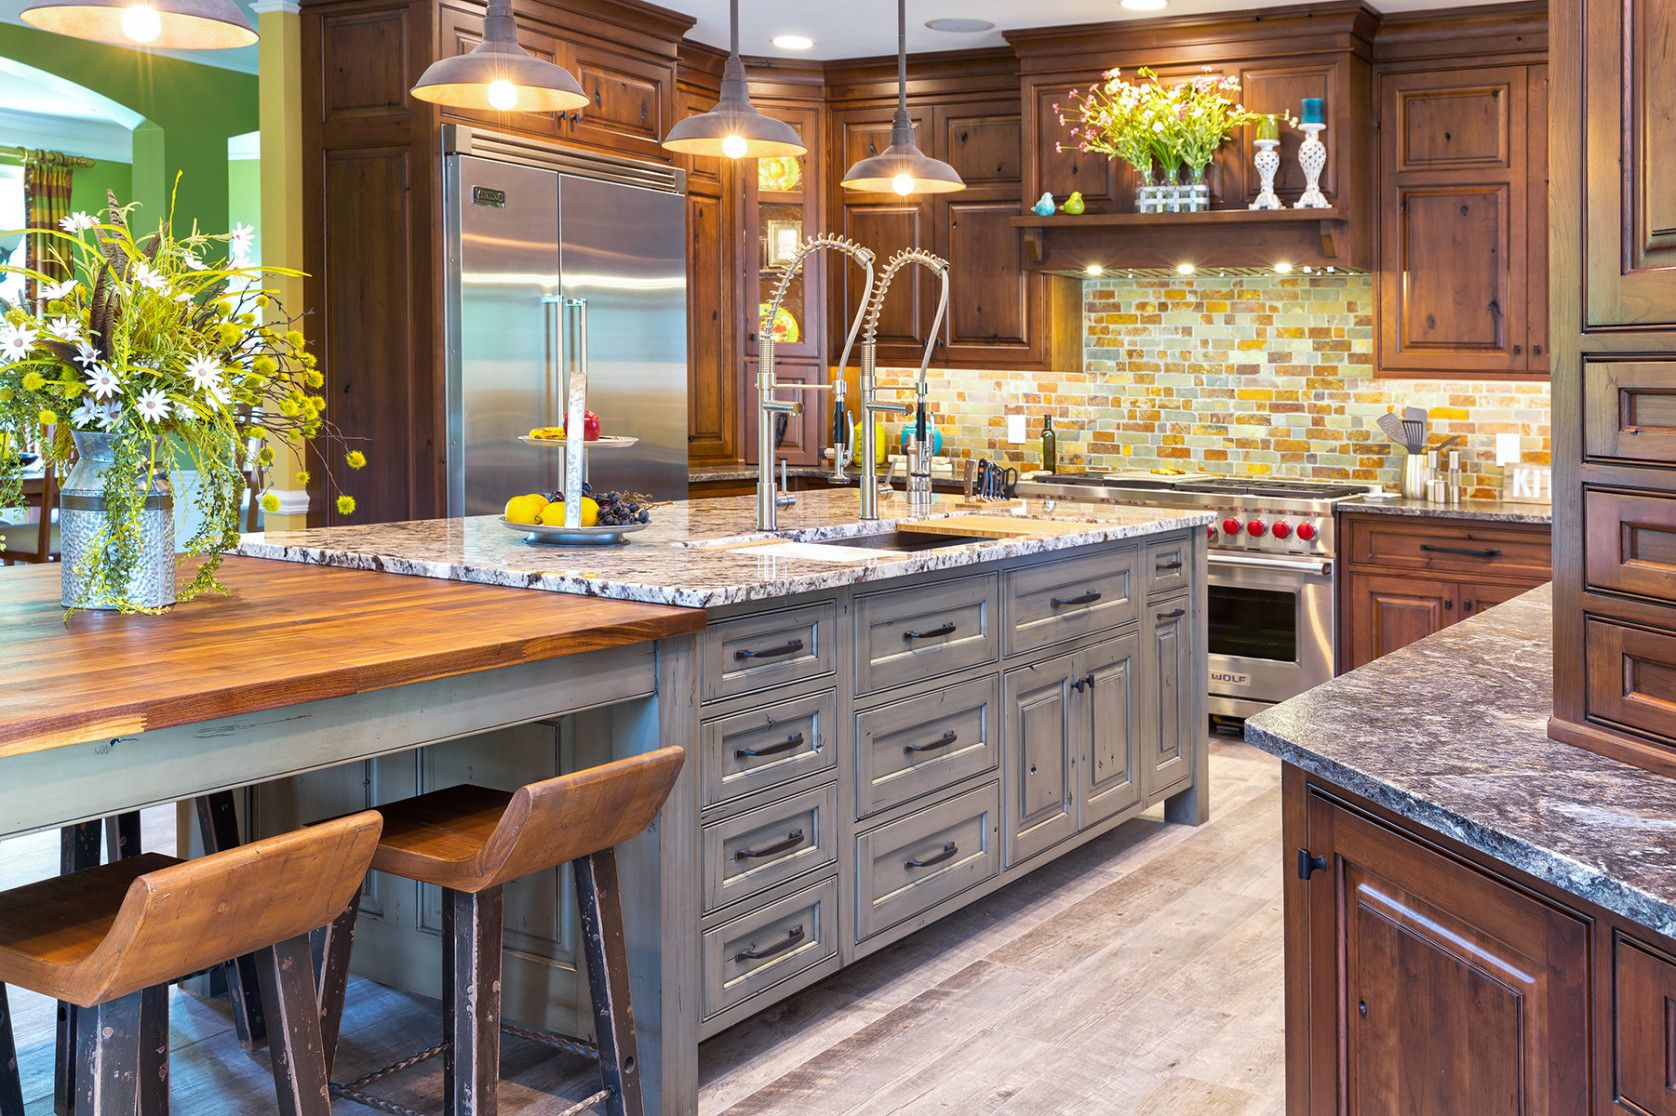 Merveilleux 2019 Wood Hollow Cabinets Dalton Ga   Small Kitchen Island Ideas With  Seating Check More At